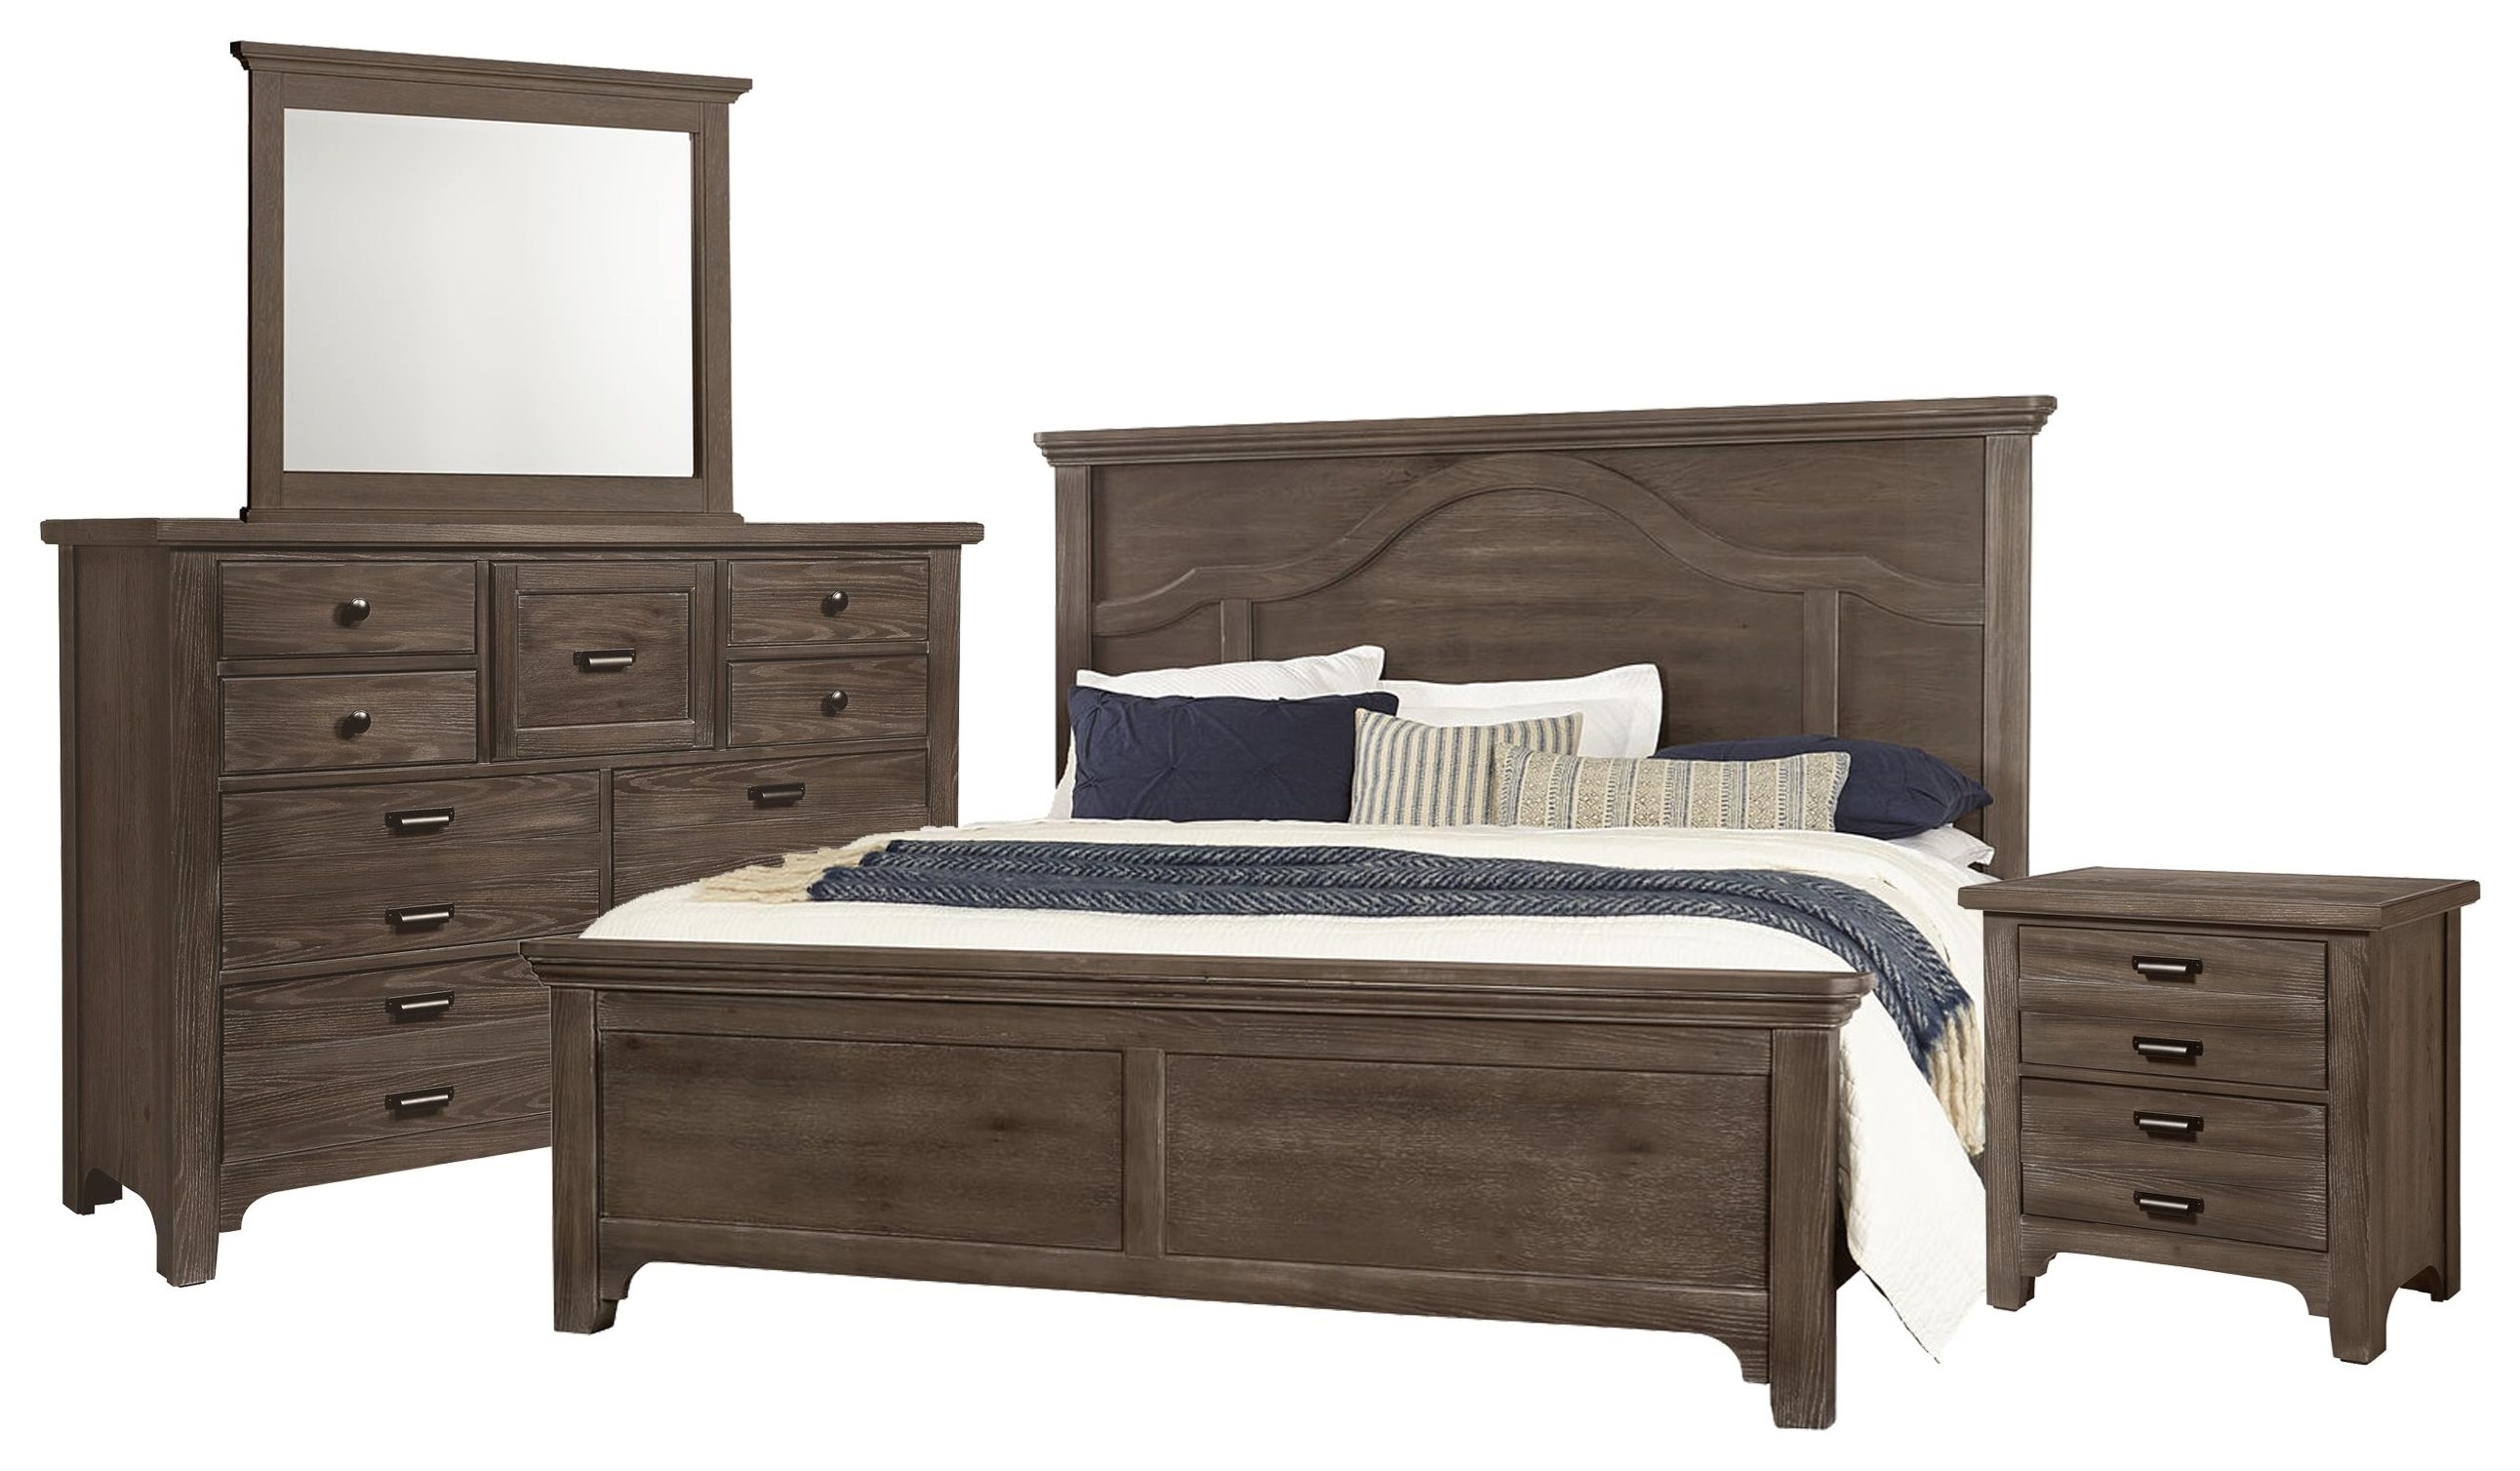 Bungalo Home King Mantel Bed, Dresser, Mirror, Nightstand by Vaughan Bassett at Johnny Janosik